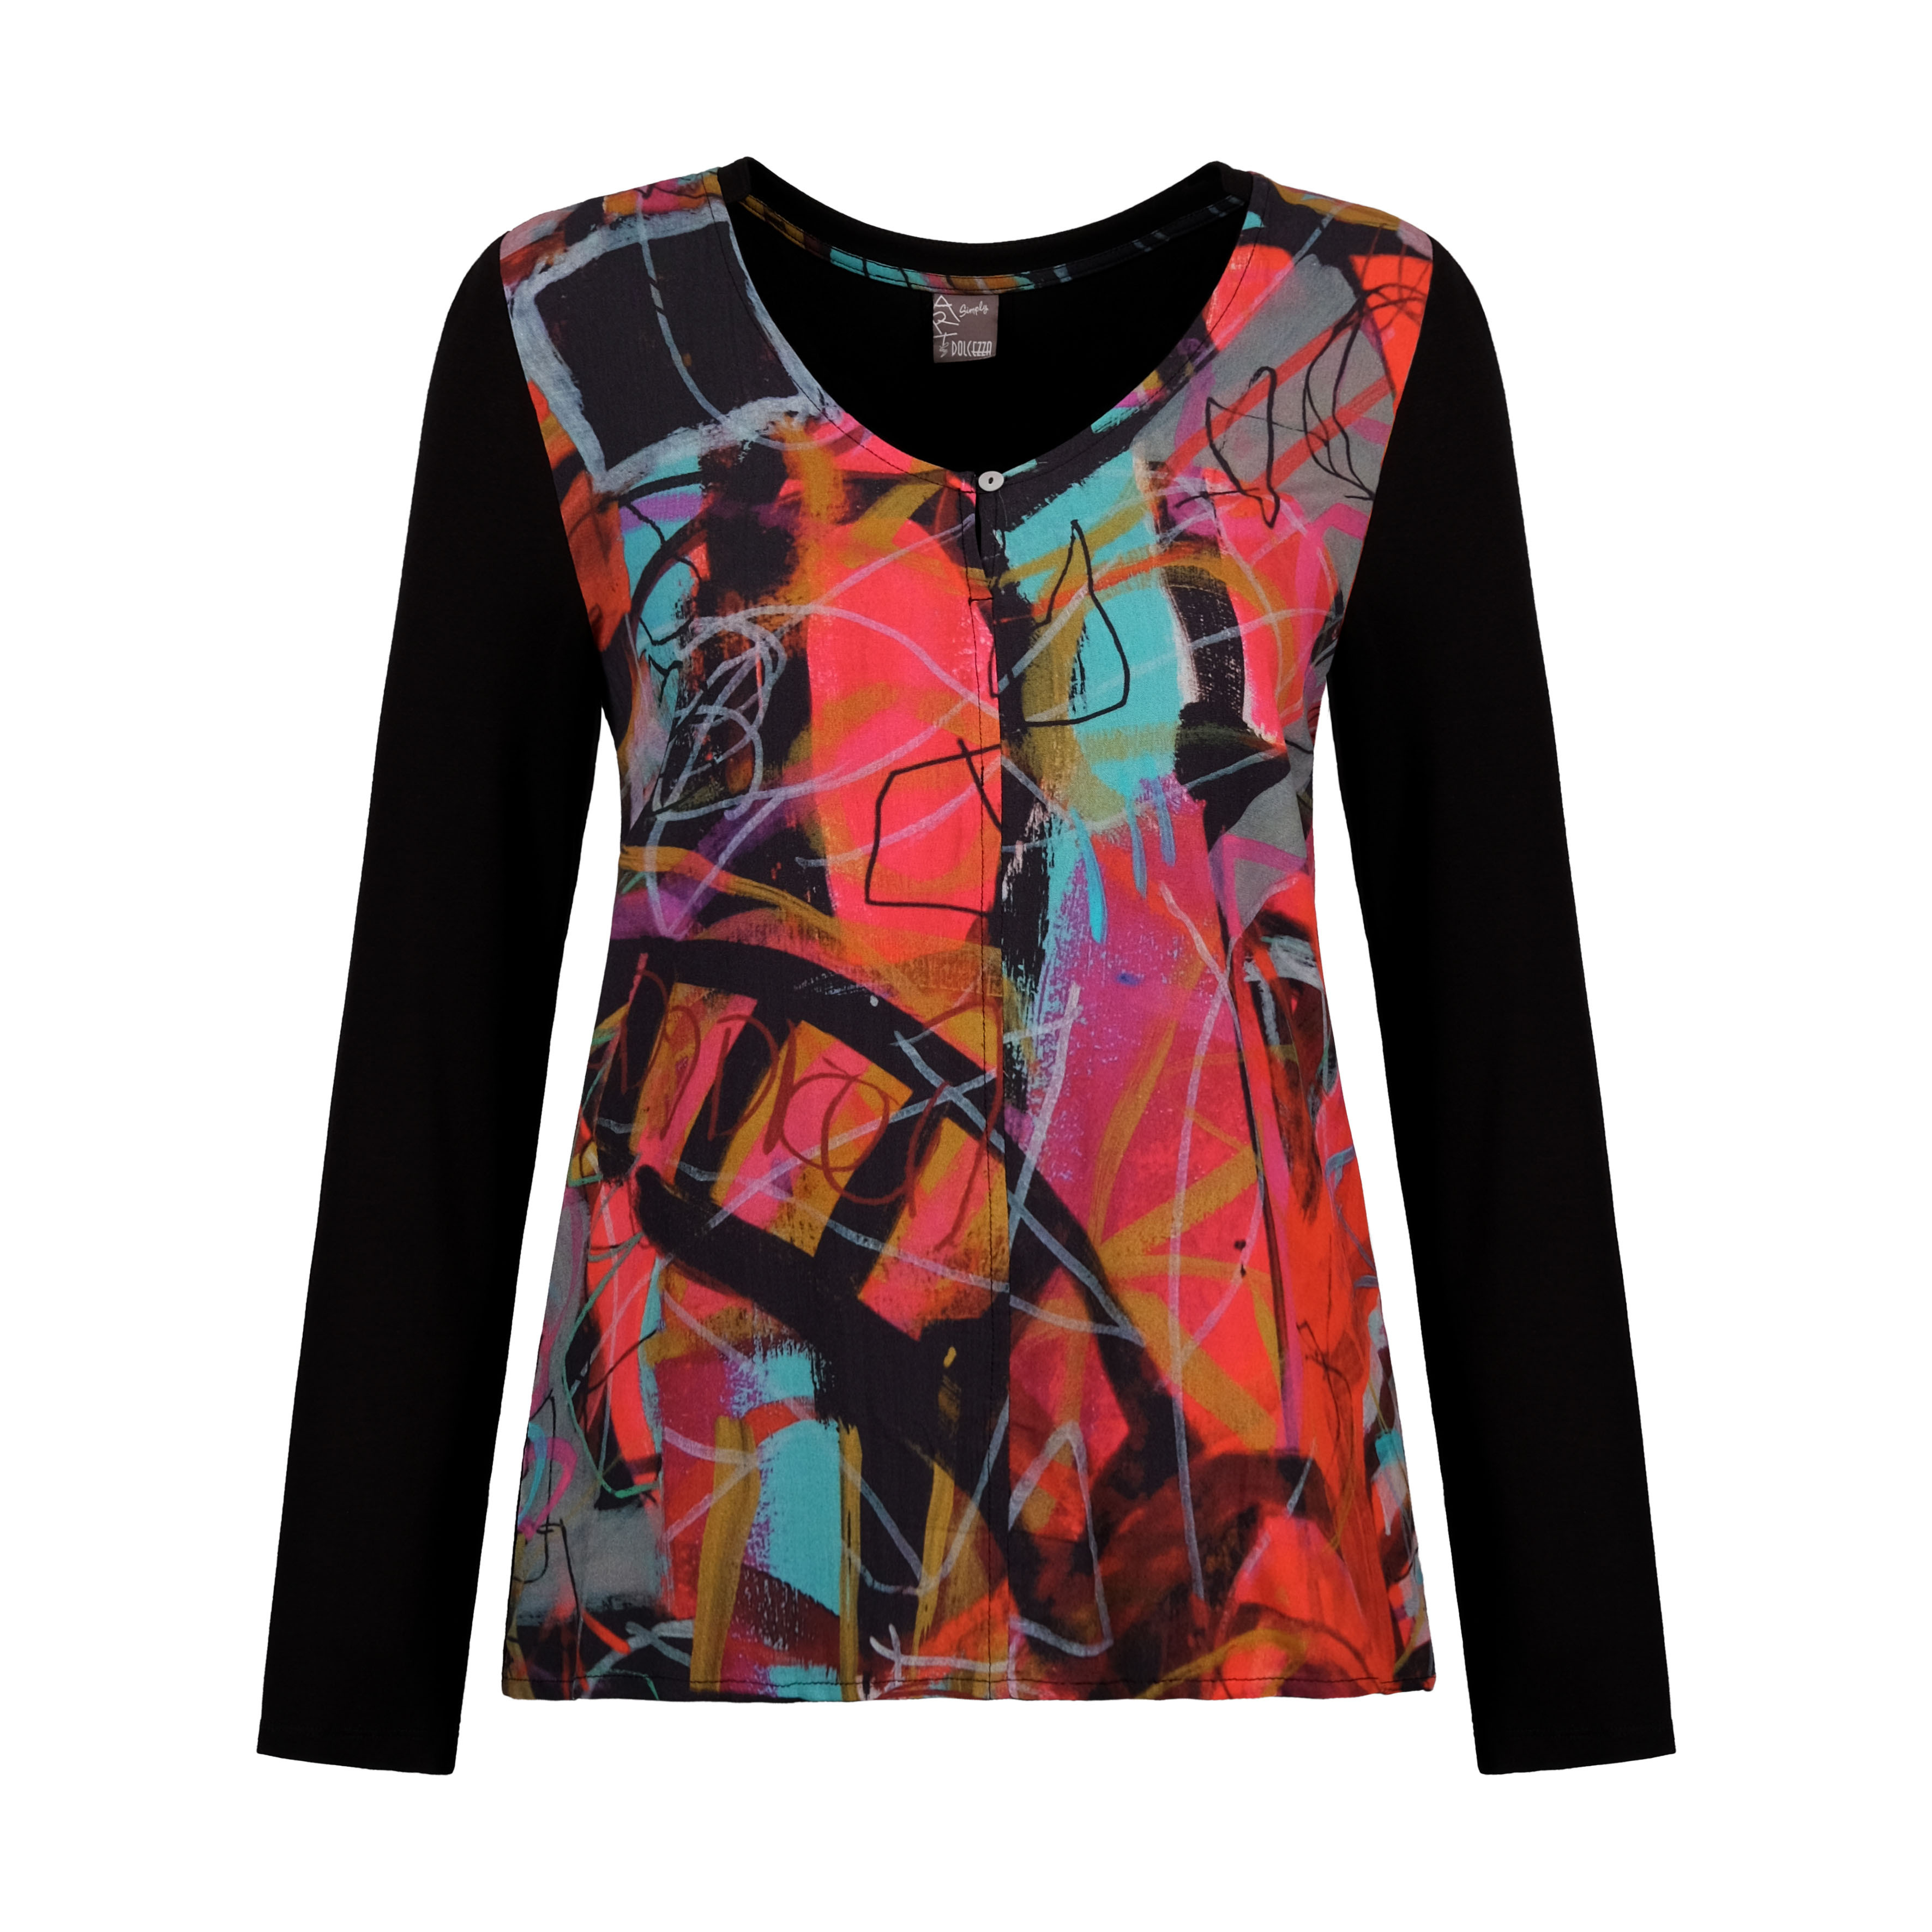 Simply Art Dolcezza: Red 3 Graffiti Abstract Art Keyhole T-Shirt  (1 Available at Special Price!) Dolcezza_SimplyArt_70623